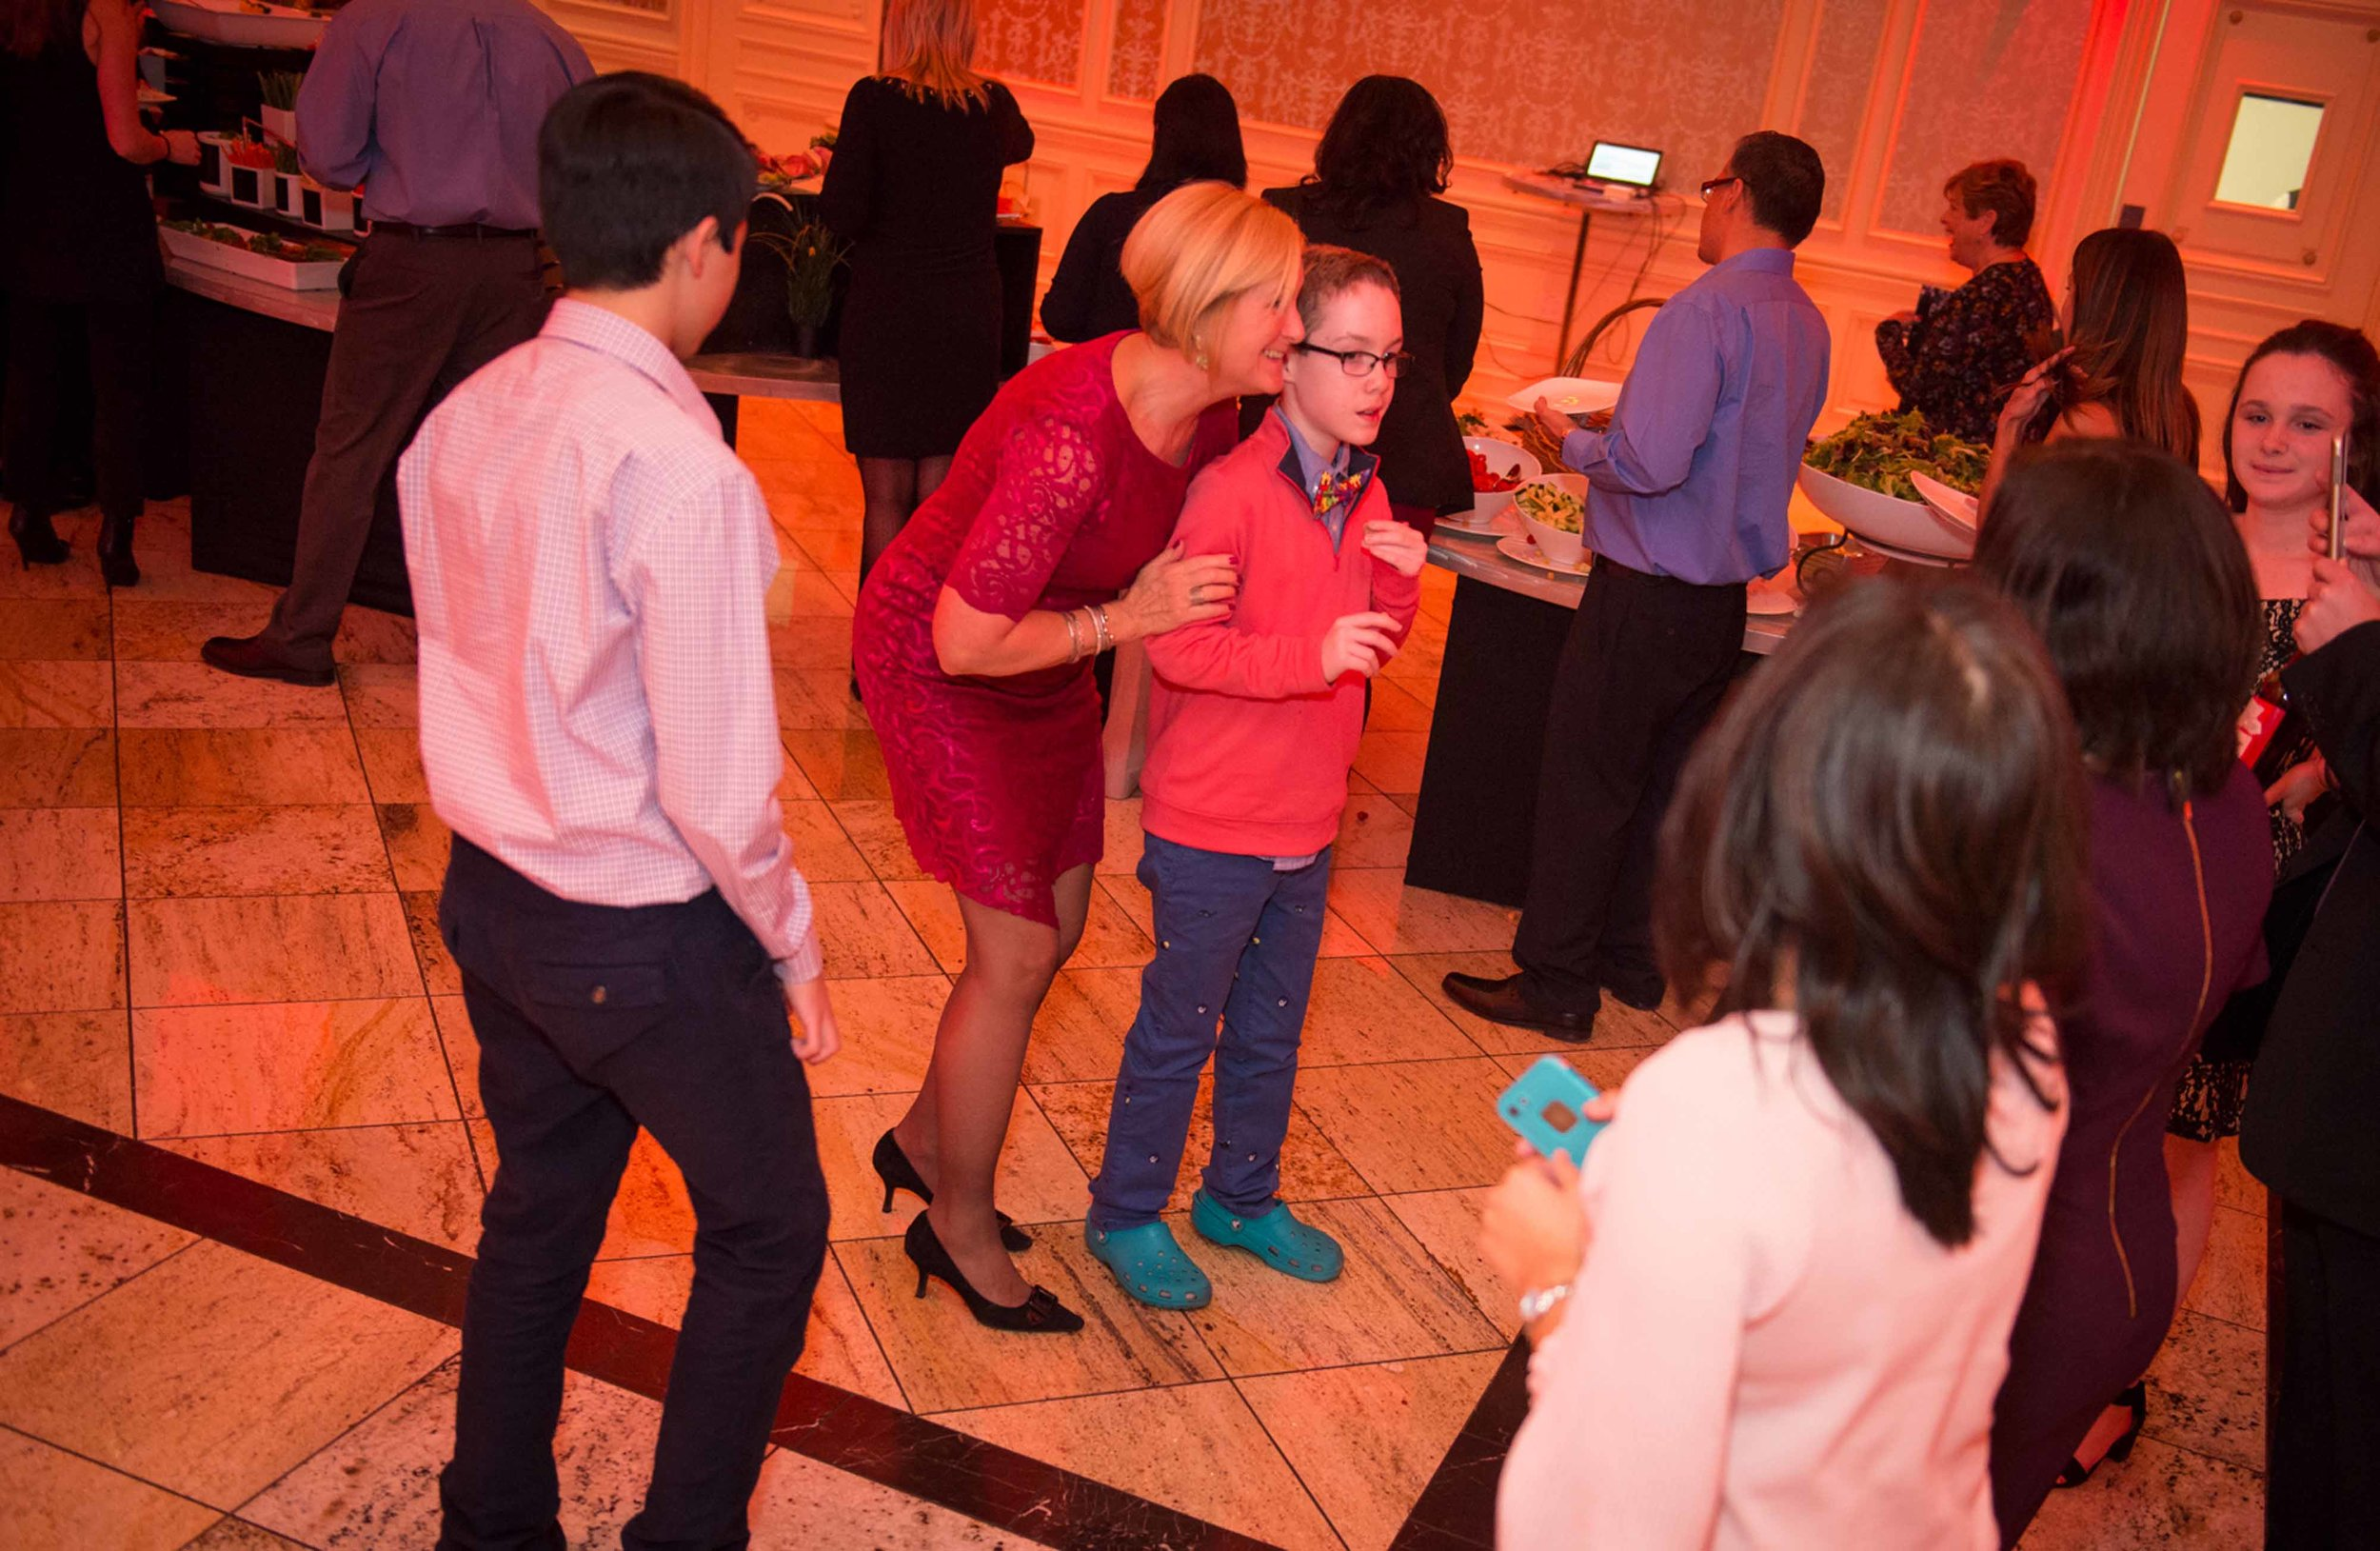 2017-11-10 The EPIC School - Party with a Purpose - Biagios on the Terrace - Paramus NJ-97.jpg